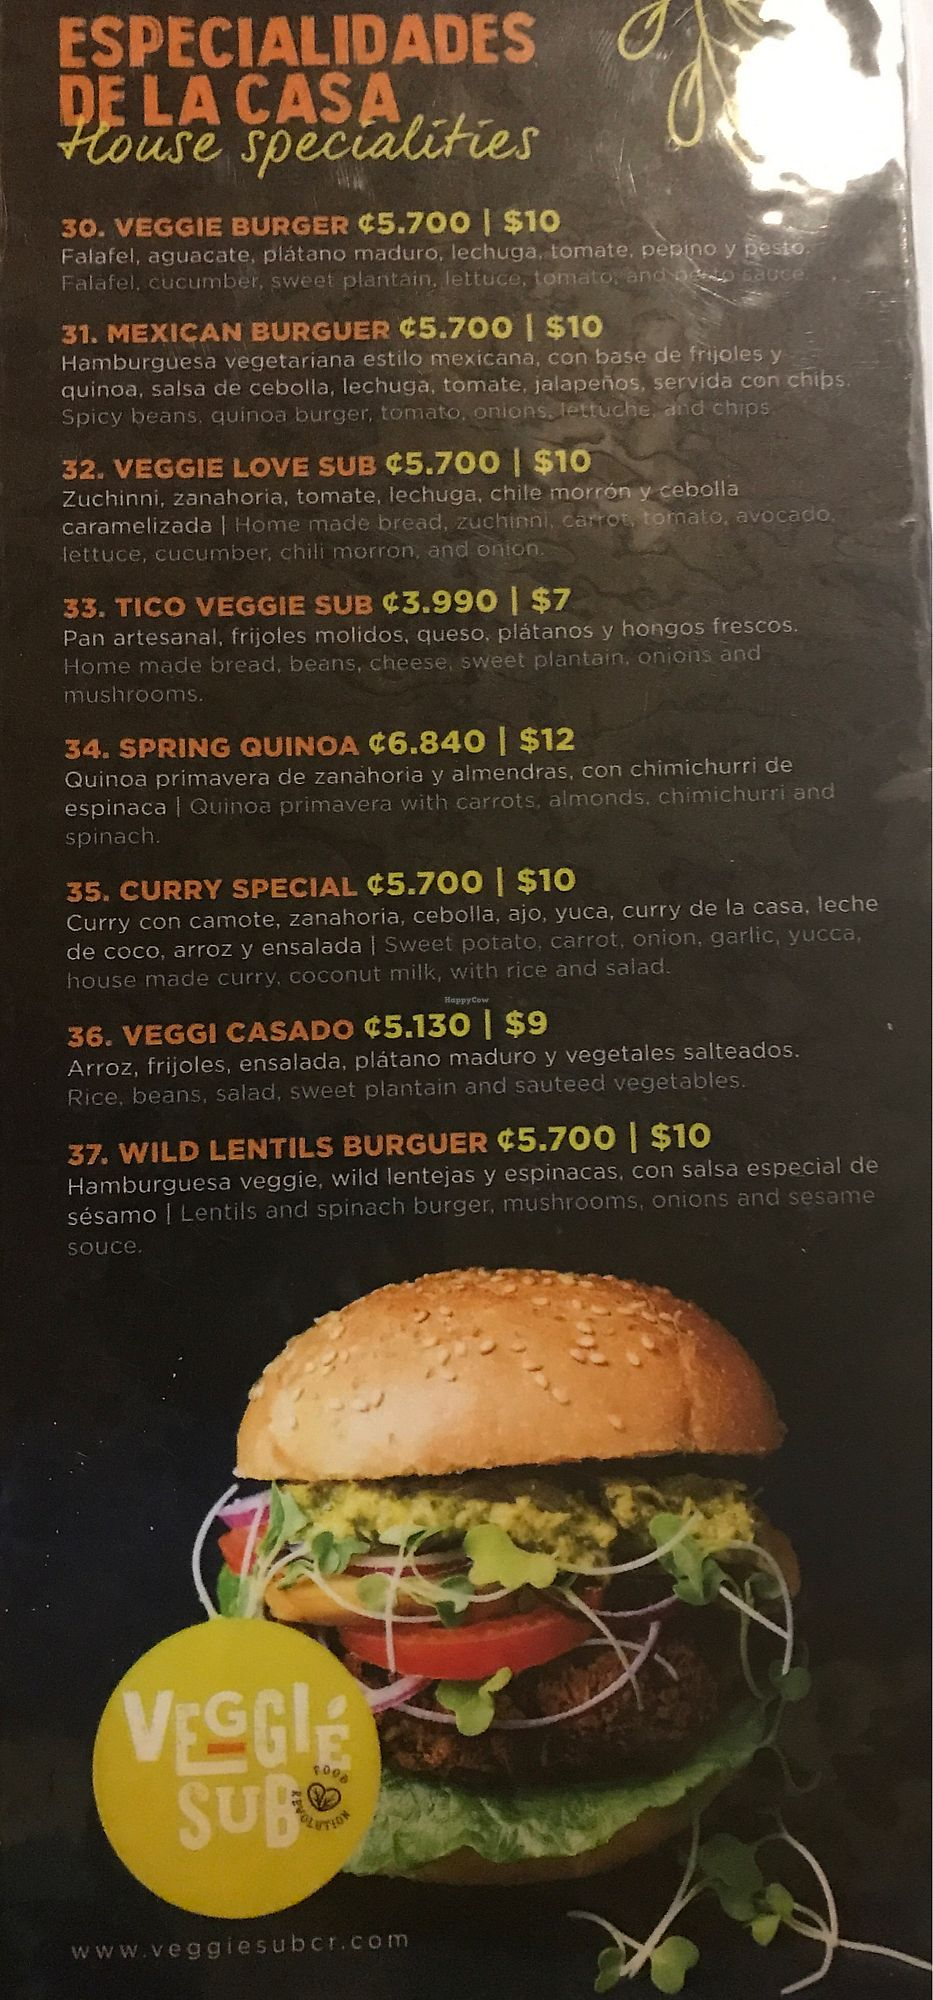 """Photo of Veggie Sub  by <a href=""""/members/profile/GaryBartlett"""">GaryBartlett</a> <br/>Menu 3 <br/> April 2, 2018  - <a href='/contact/abuse/image/109220/379654'>Report</a>"""